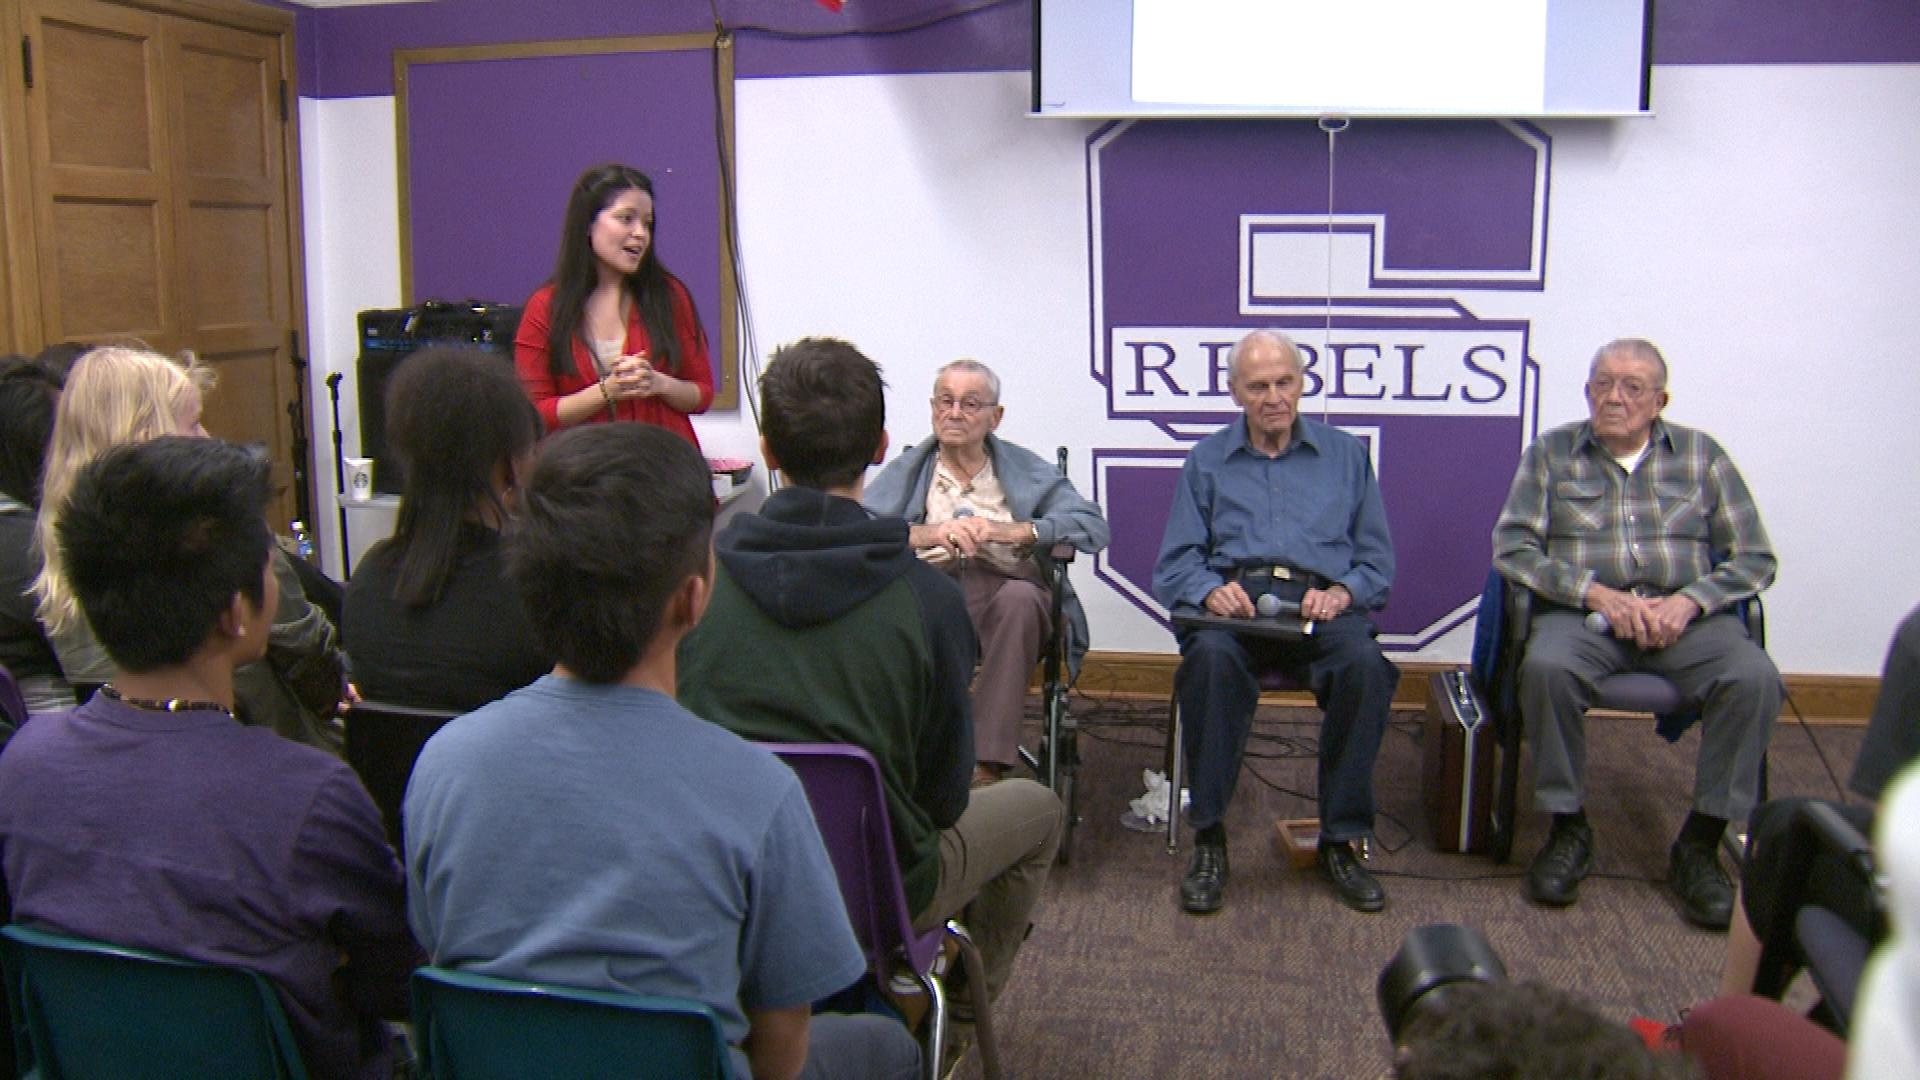 Students talk with Harold Haberman, left, Carl Hammergren, center, and Earl Lammers, right (credit: CBS)